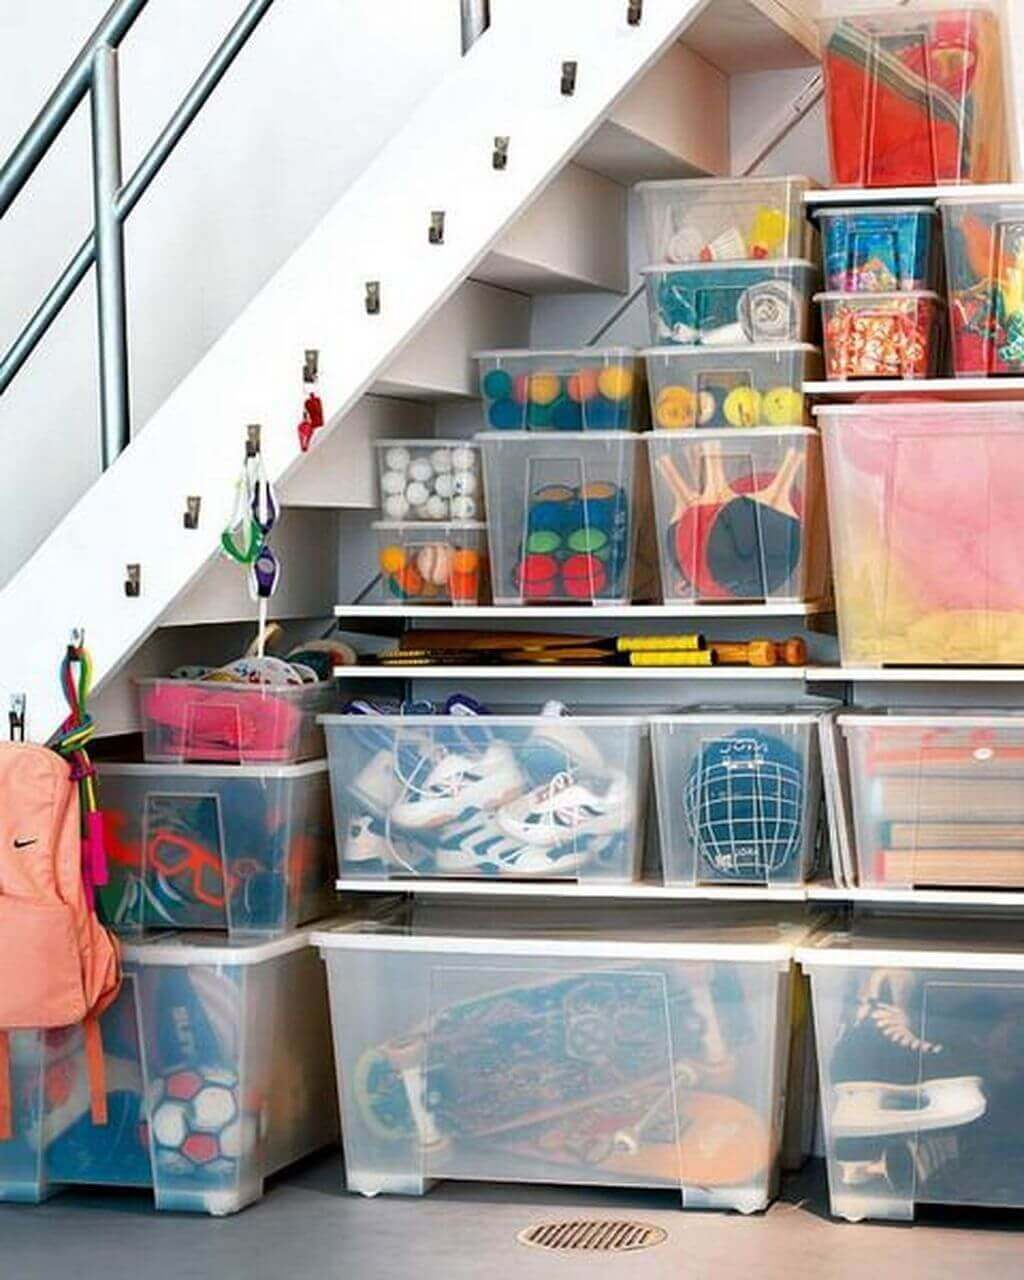 Simple Basement Storage Ideas under Stair Storage with Plastic Containers and Hangers